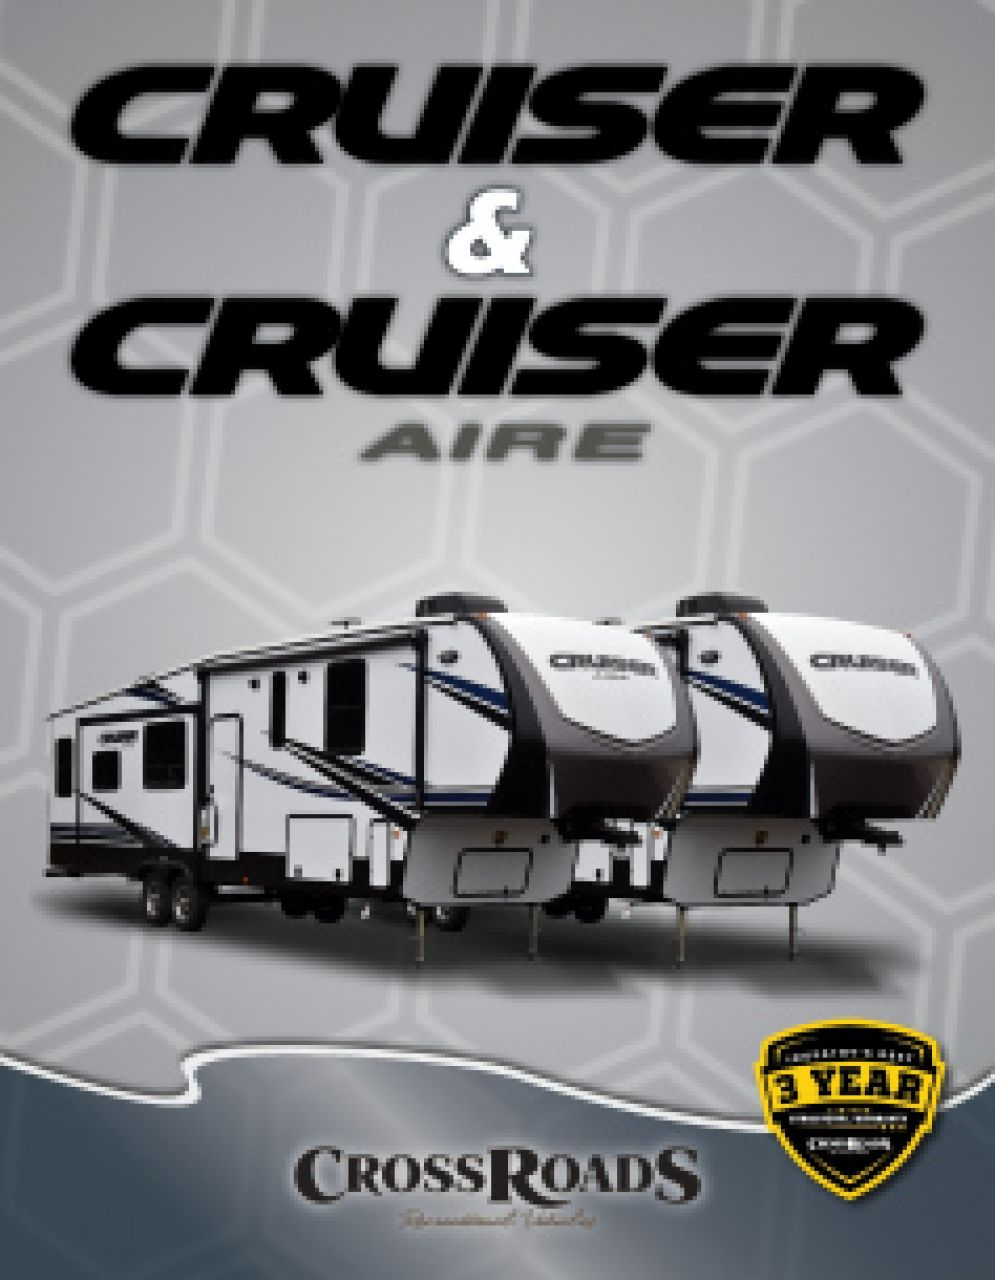 2019 CrossRoads Cruiser Aire RV Brochure Cover